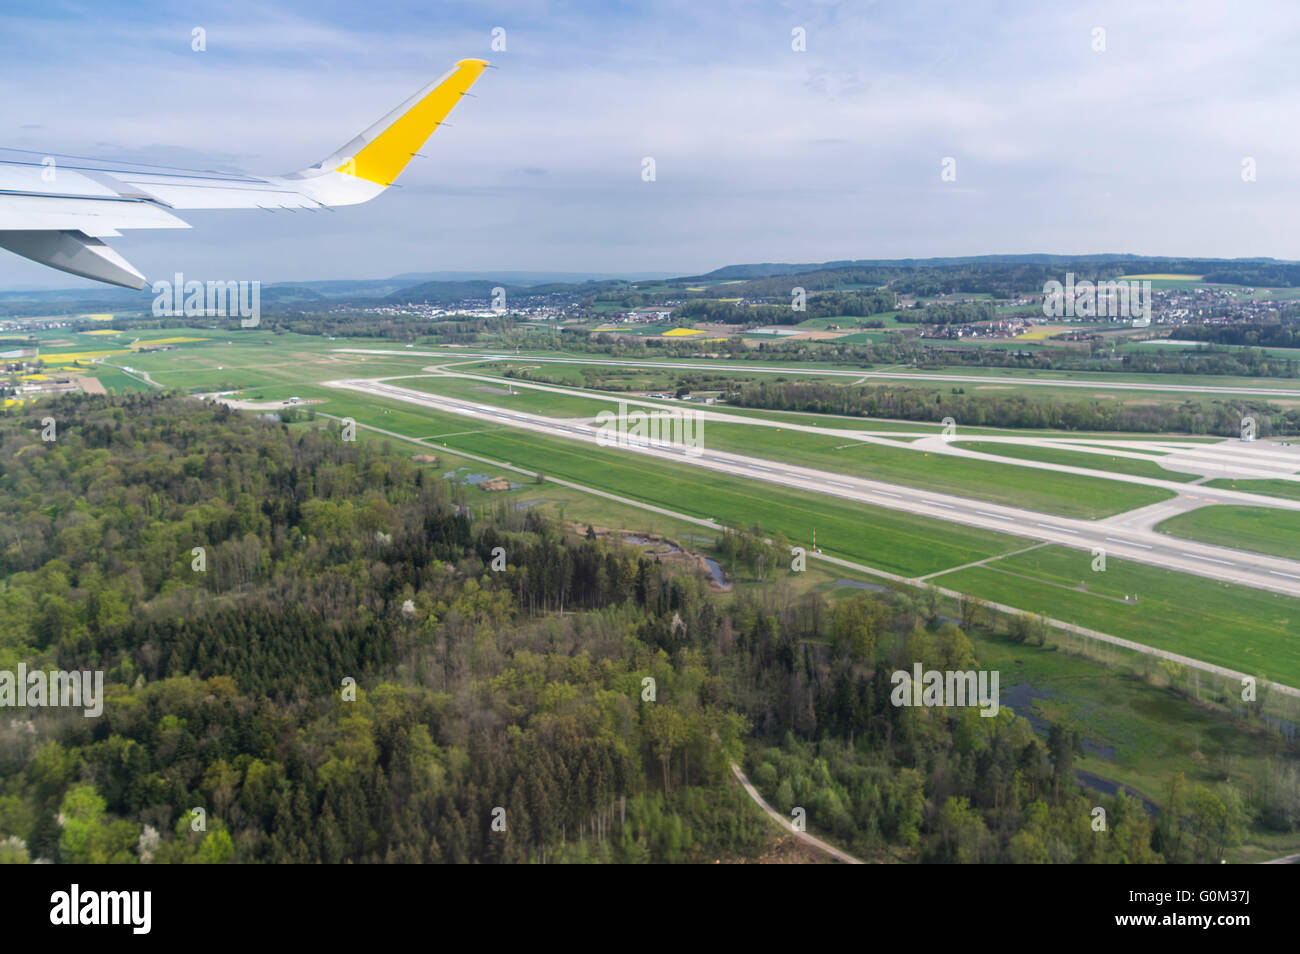 Aerial photography of a runway of Zurich airport out of a Vueling airplane just after take-off. - Stock Image